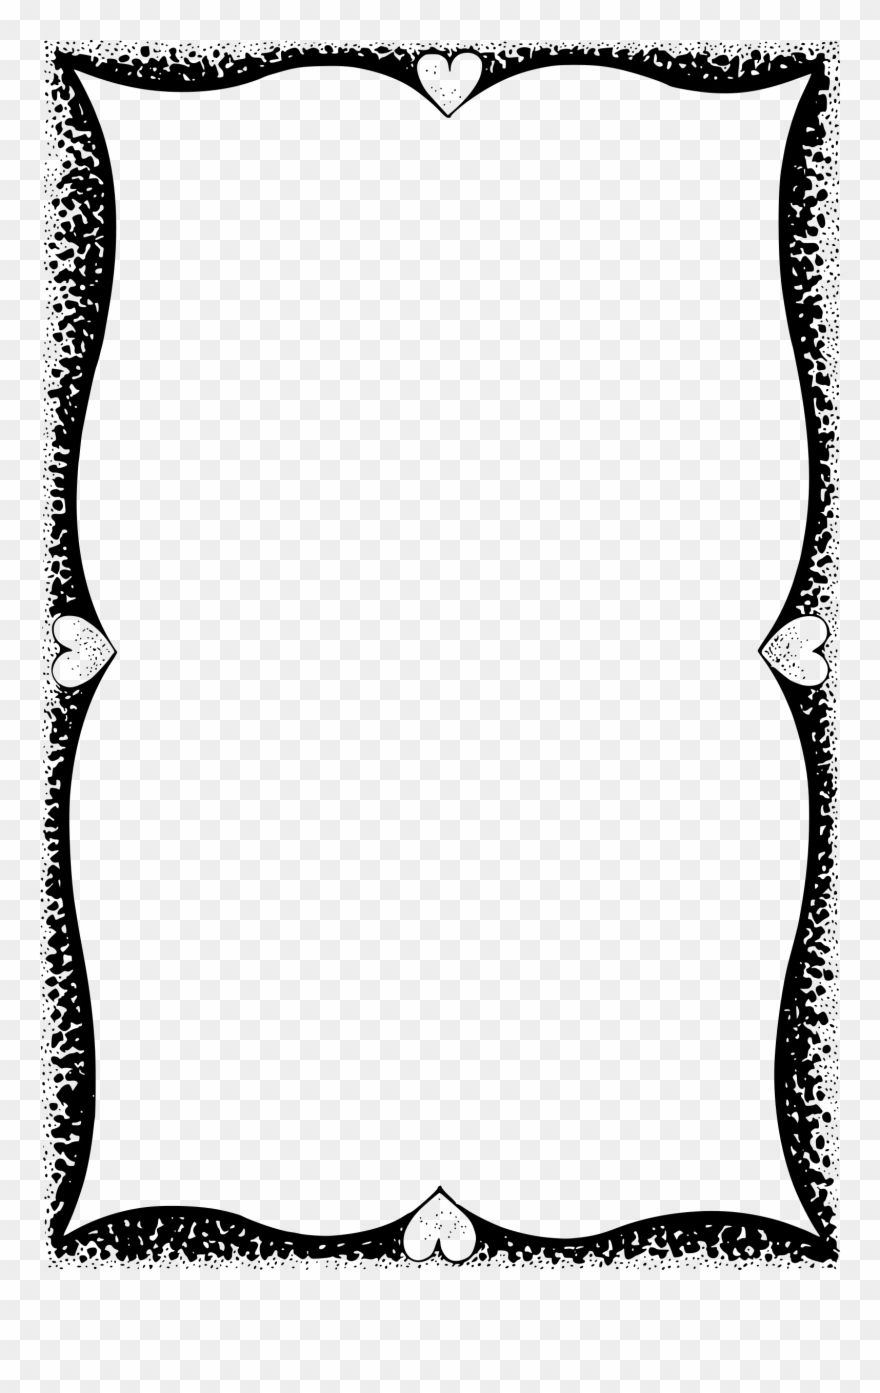 Elephant love clipart corner borders black and white picture transparent library Big Image - Love Frame Black And White Clipart (#387719) - PinClipart picture transparent library